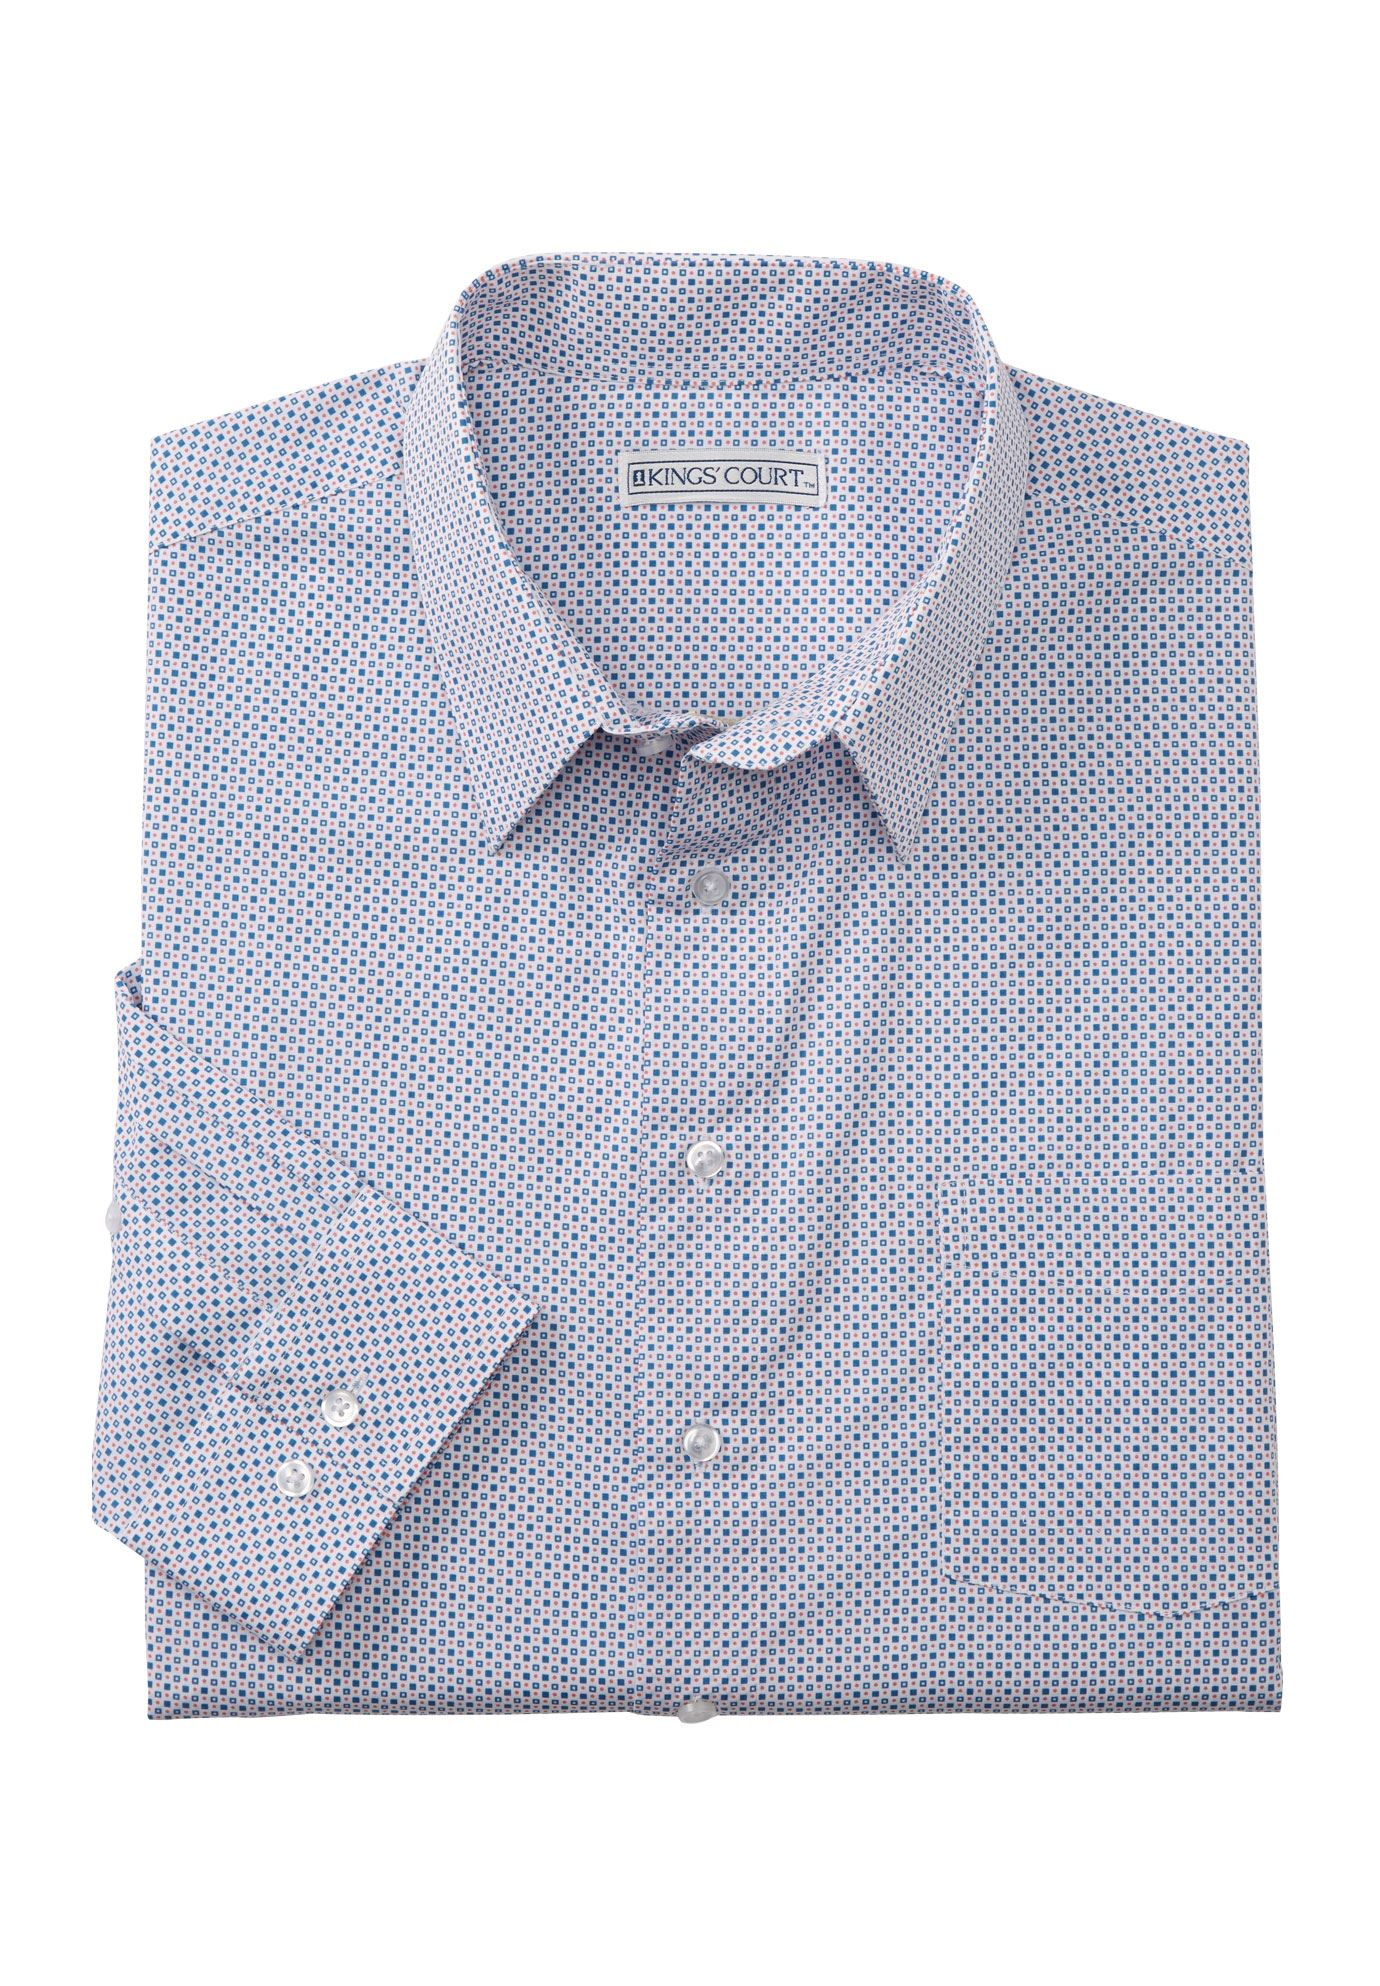 No Hassle® Patterned Long-Sleeve Dress Shirt by KS Signature®,